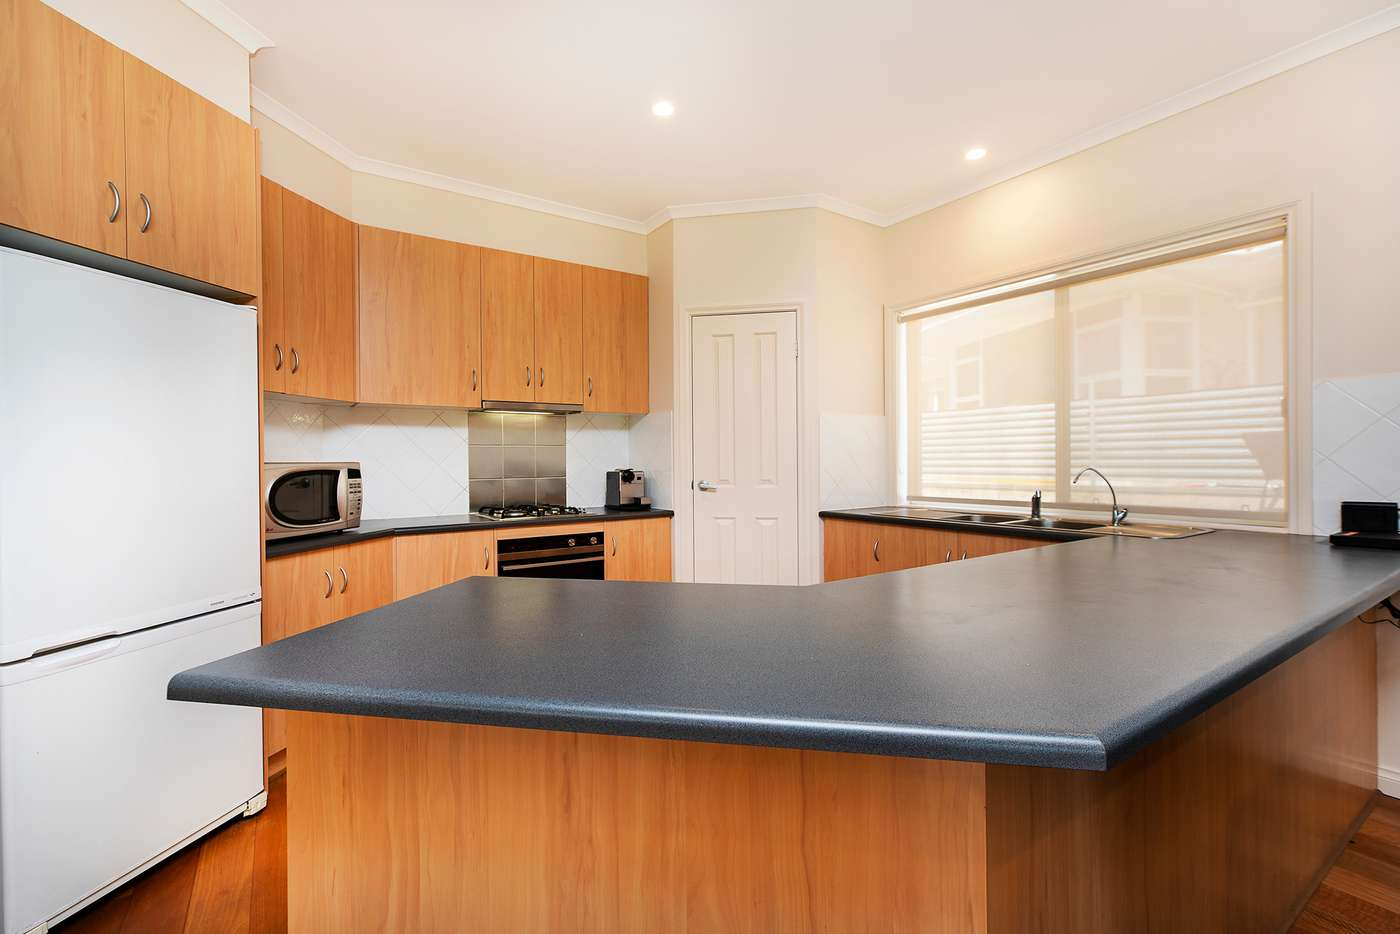 Sixth view of Homely house listing, 16 Yeelanna Avenue, Seaview Downs SA 5049